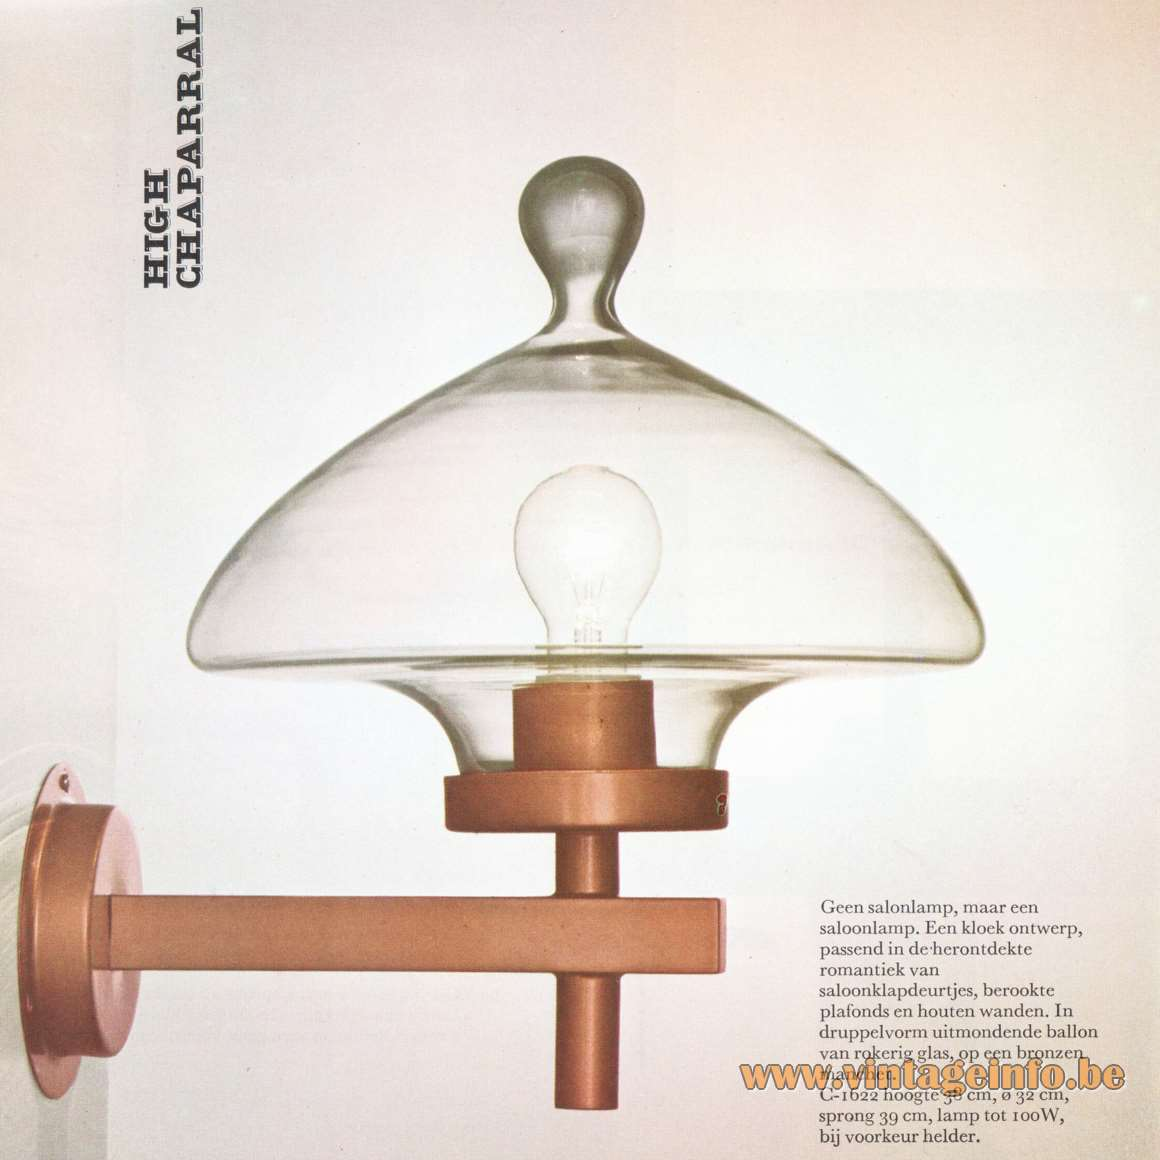 1970s Florentine Droplet Chandelier - Raak Catalogue 8 - 1968 - High Chaparral Wall Lamp